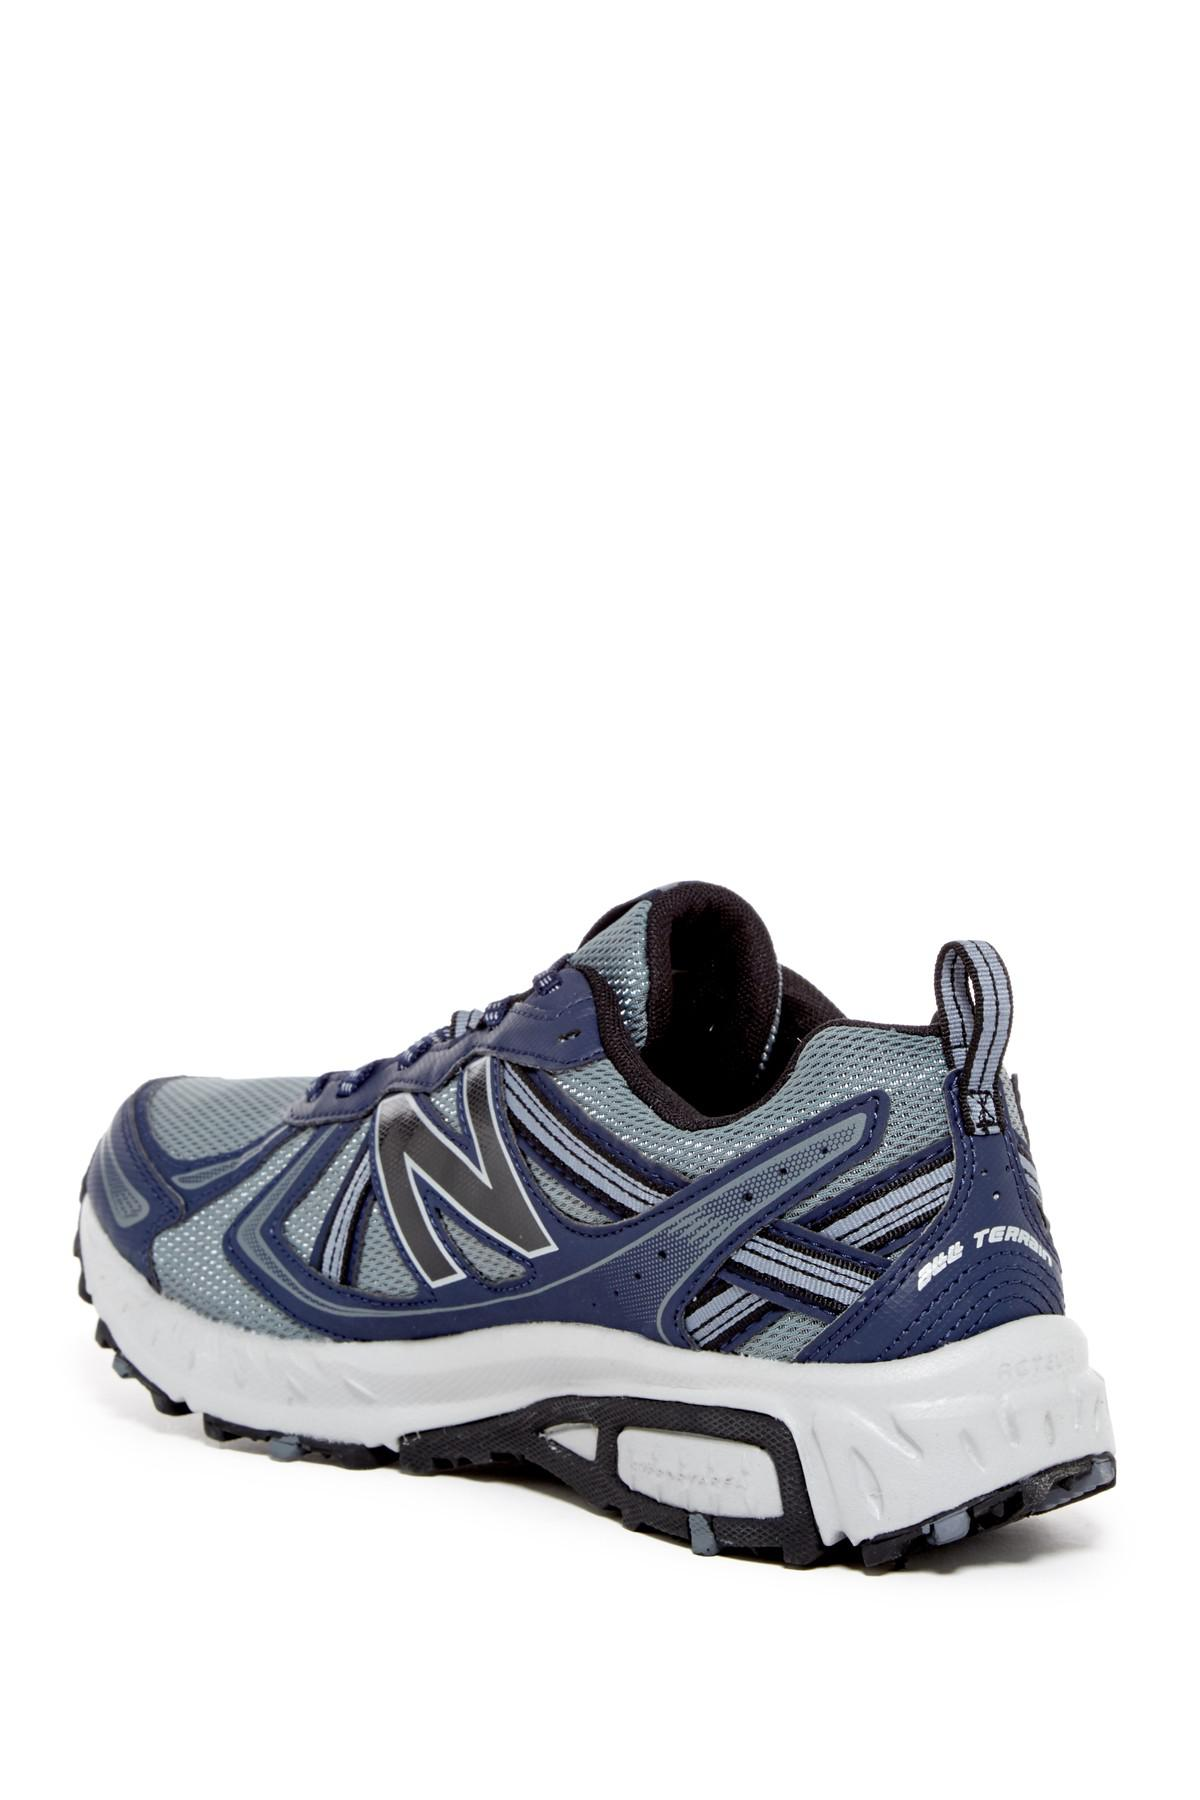 New Balance Synthetic Mt410v4 Trail